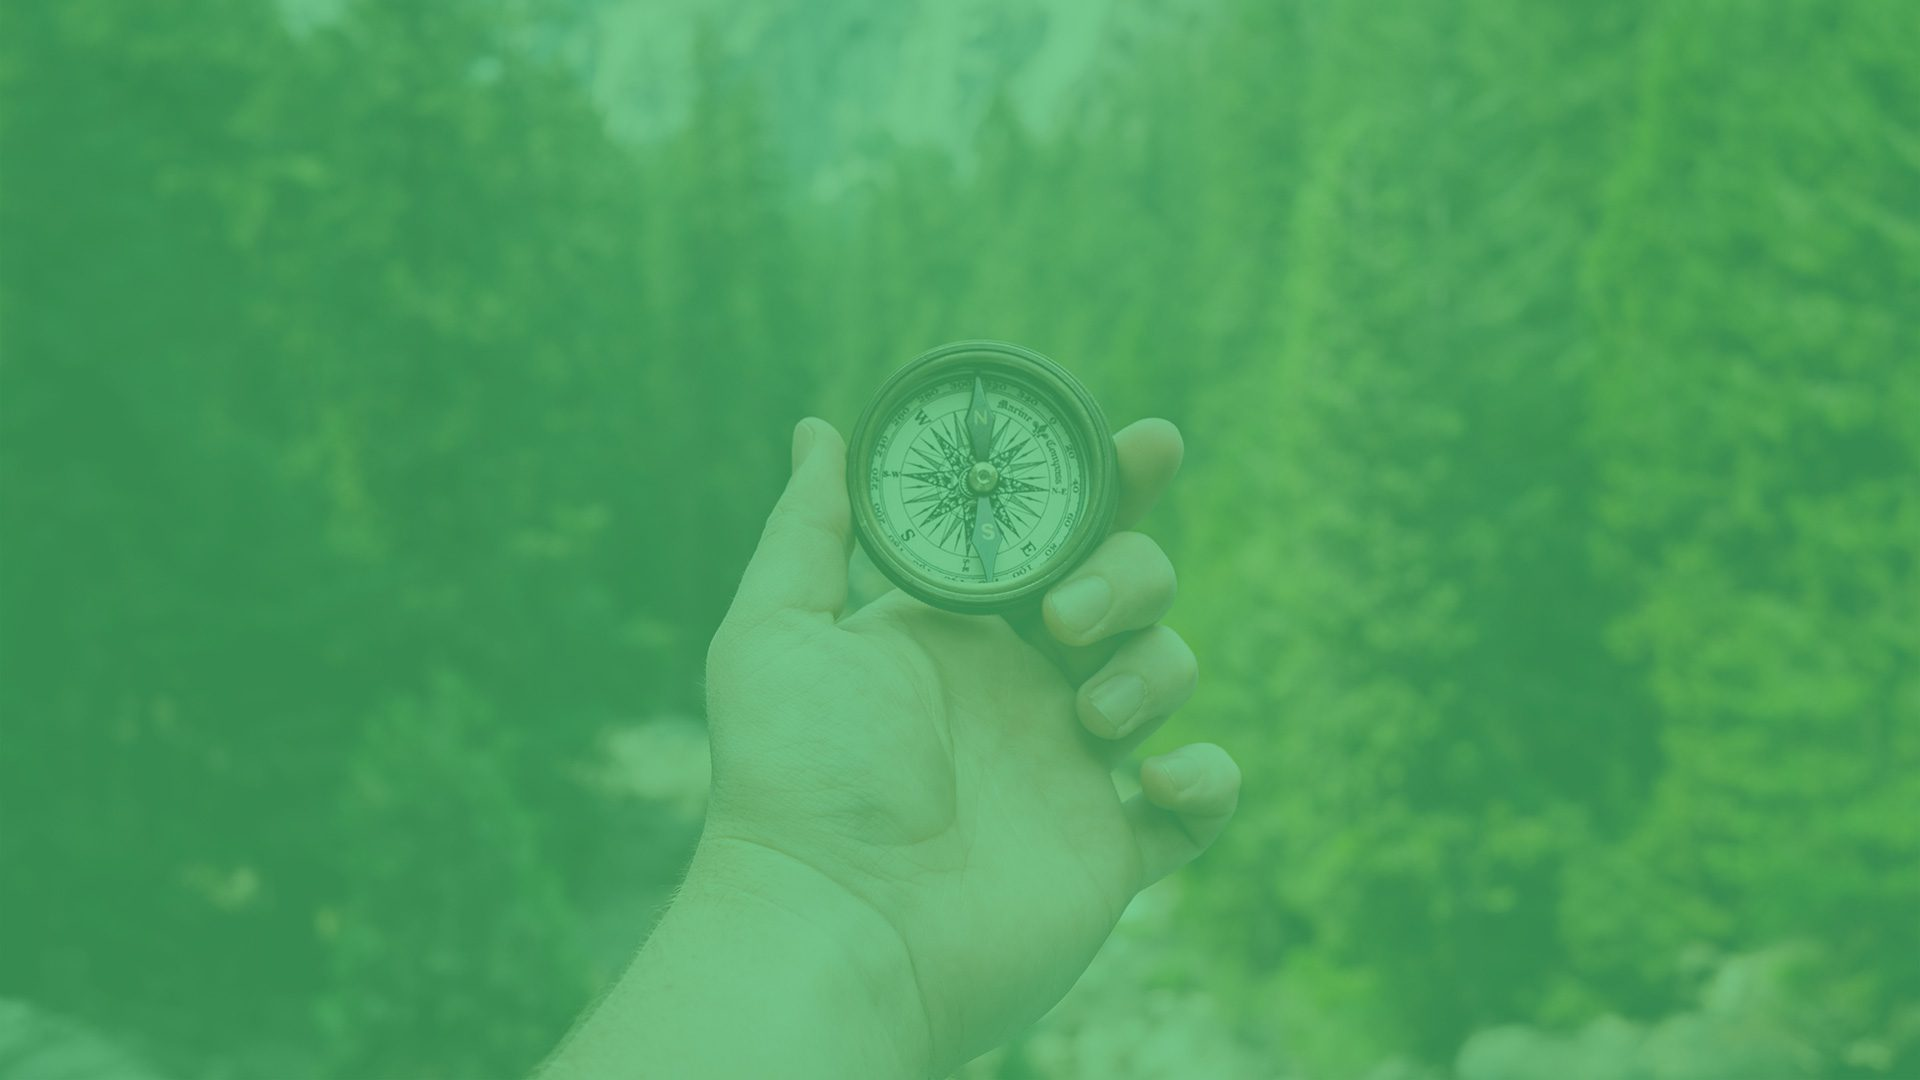 compass in hand 1point3creative